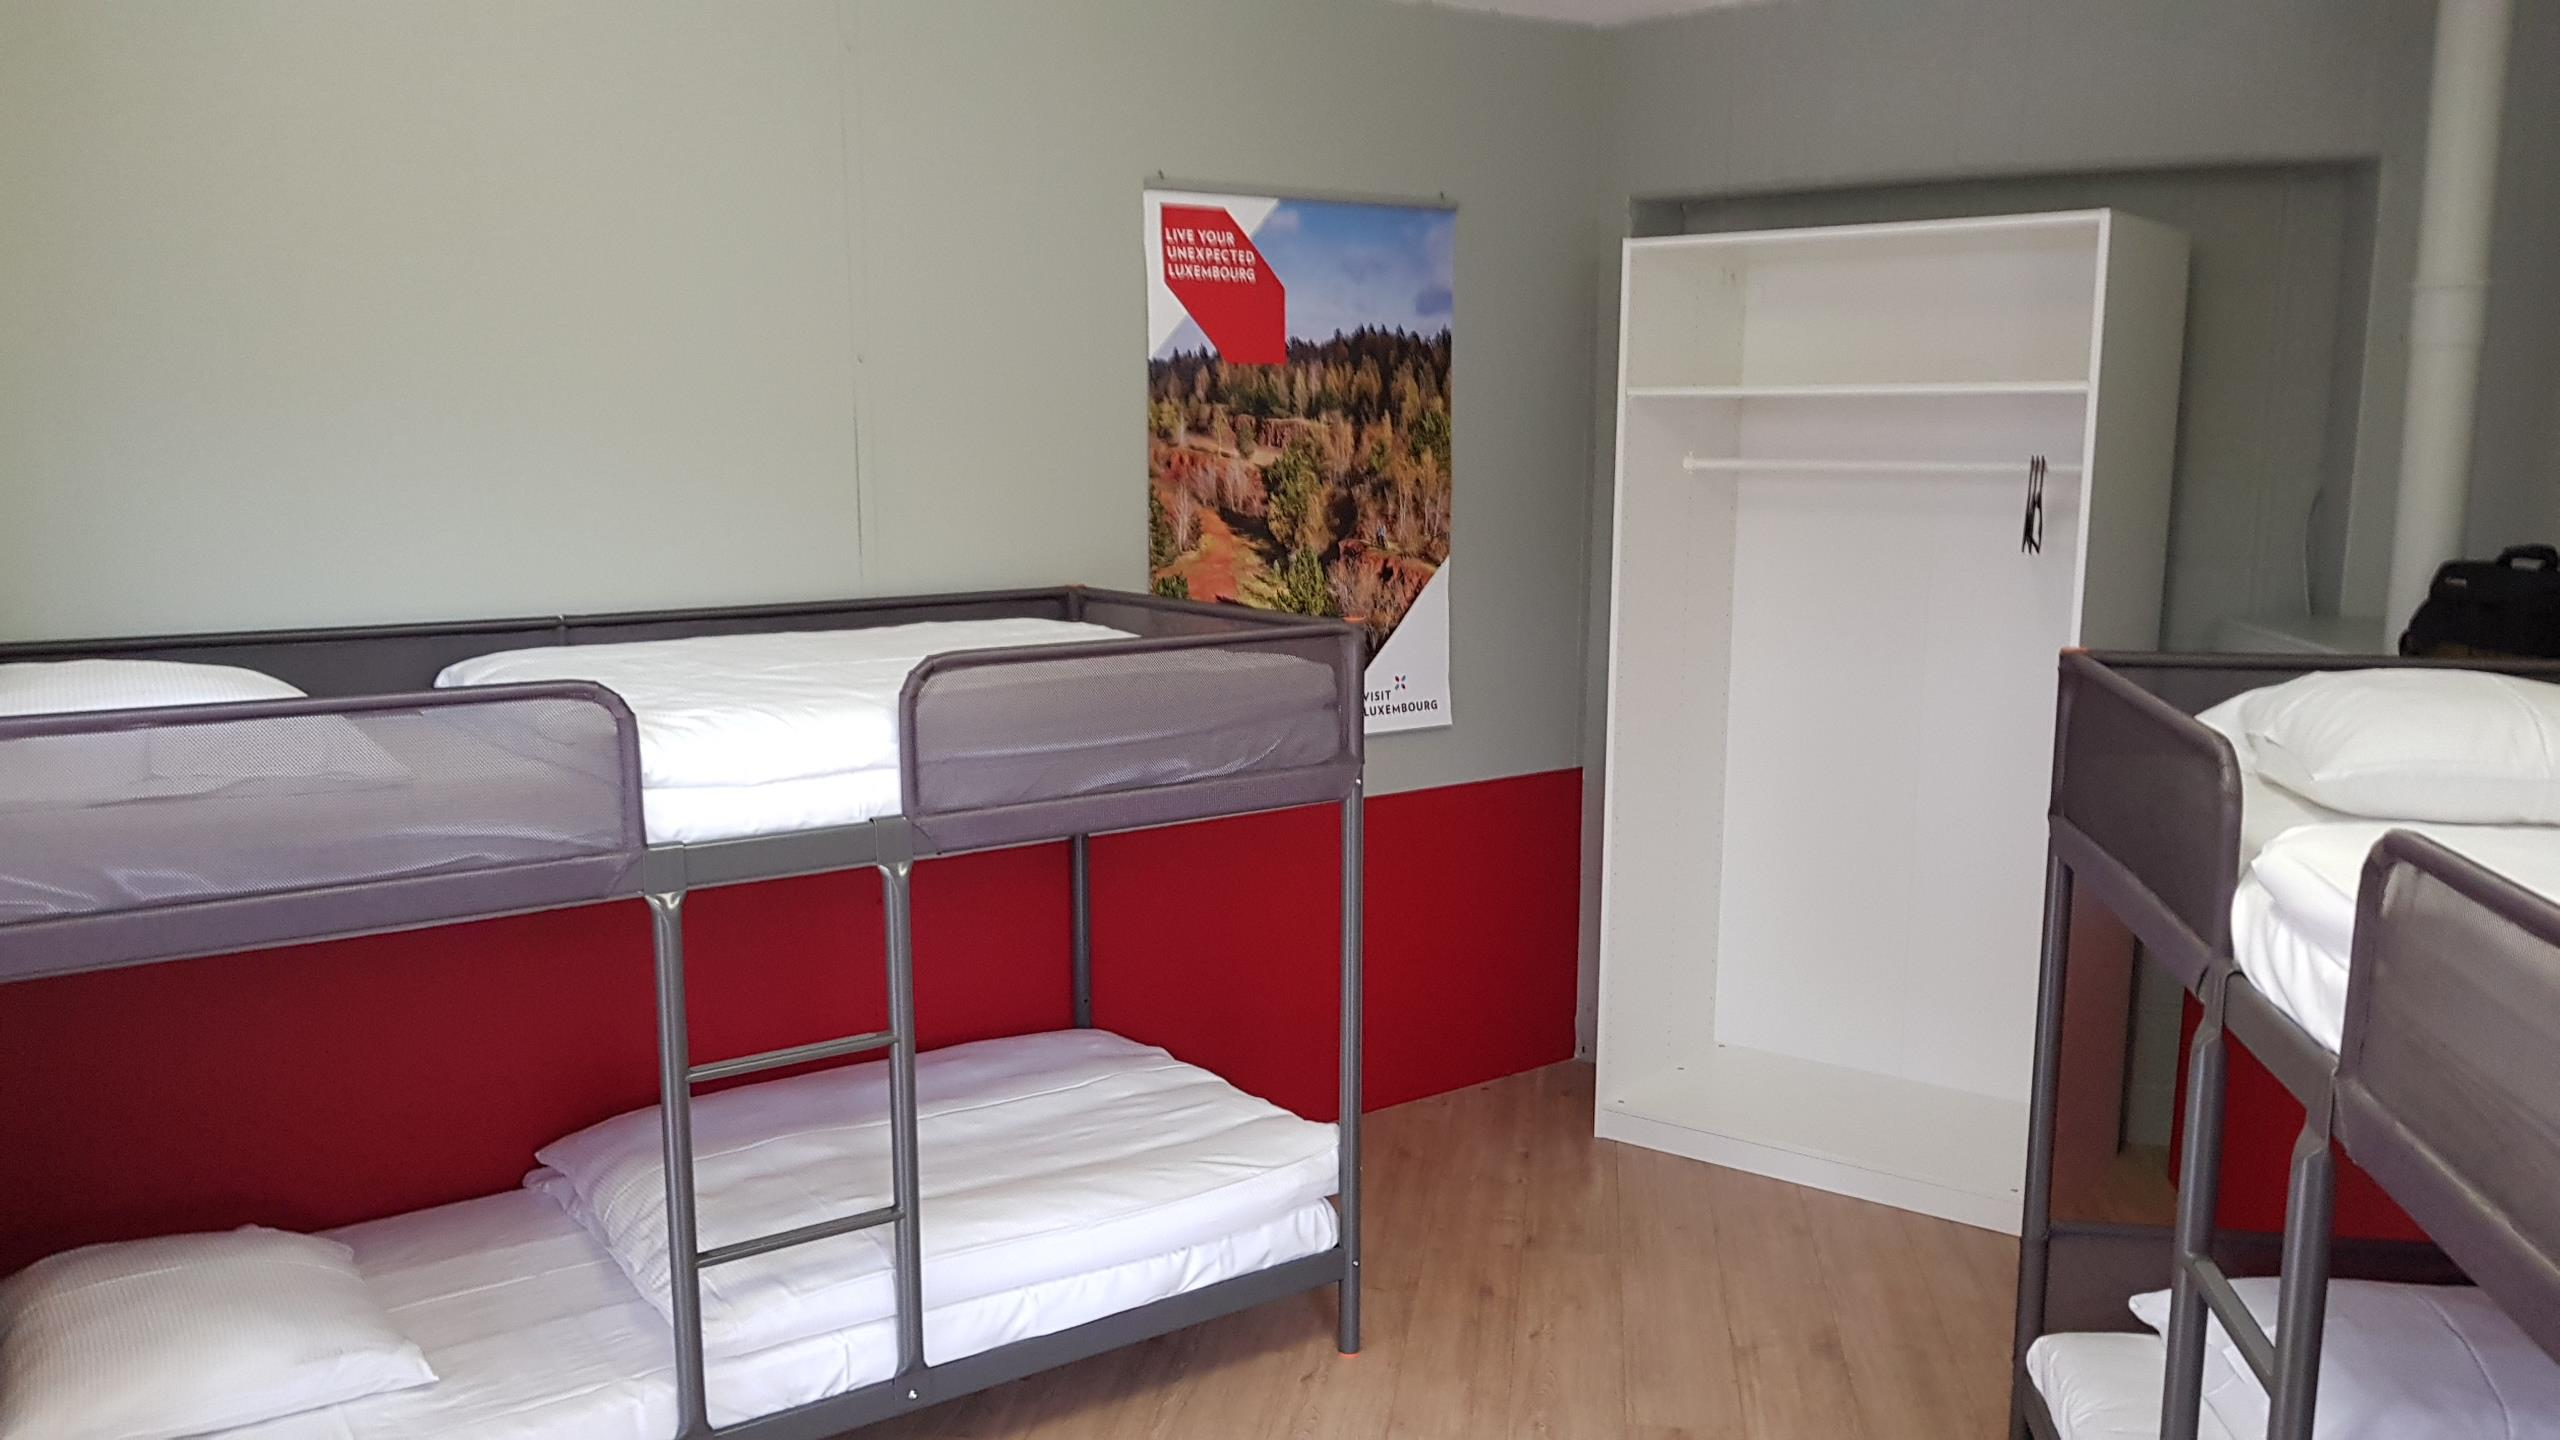 Room with single beds and bunk beds Max. 3 days